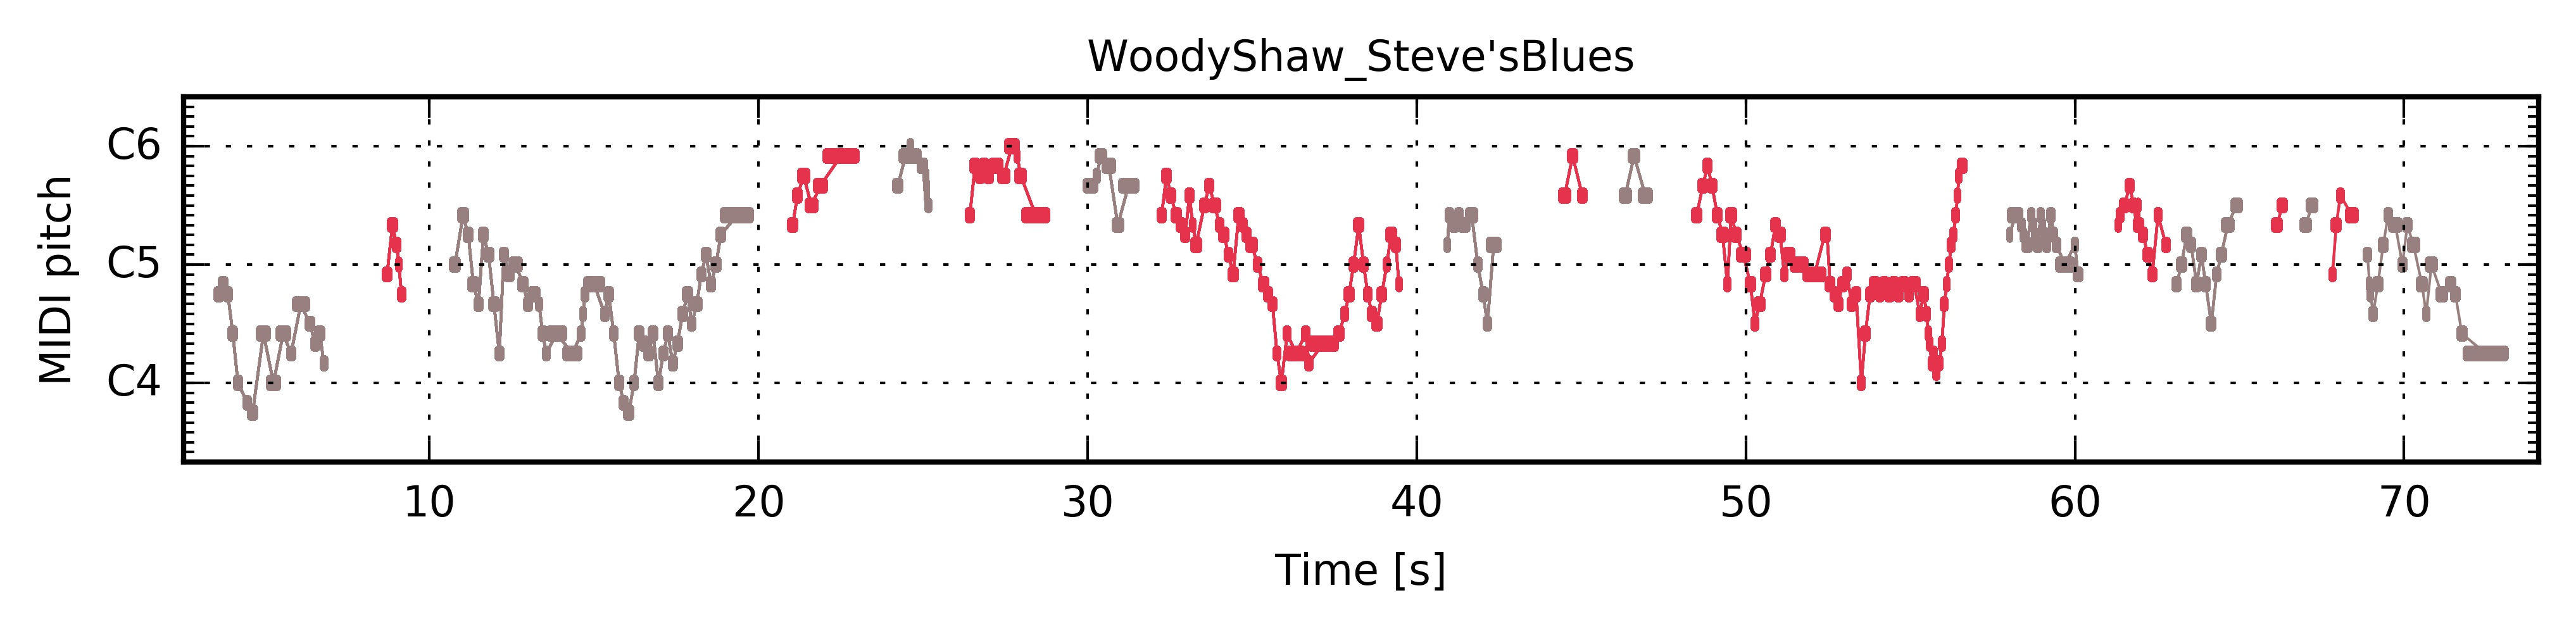 ../../_images/PianoRoll_WoodyShaw_Steve'sBlues.jpg